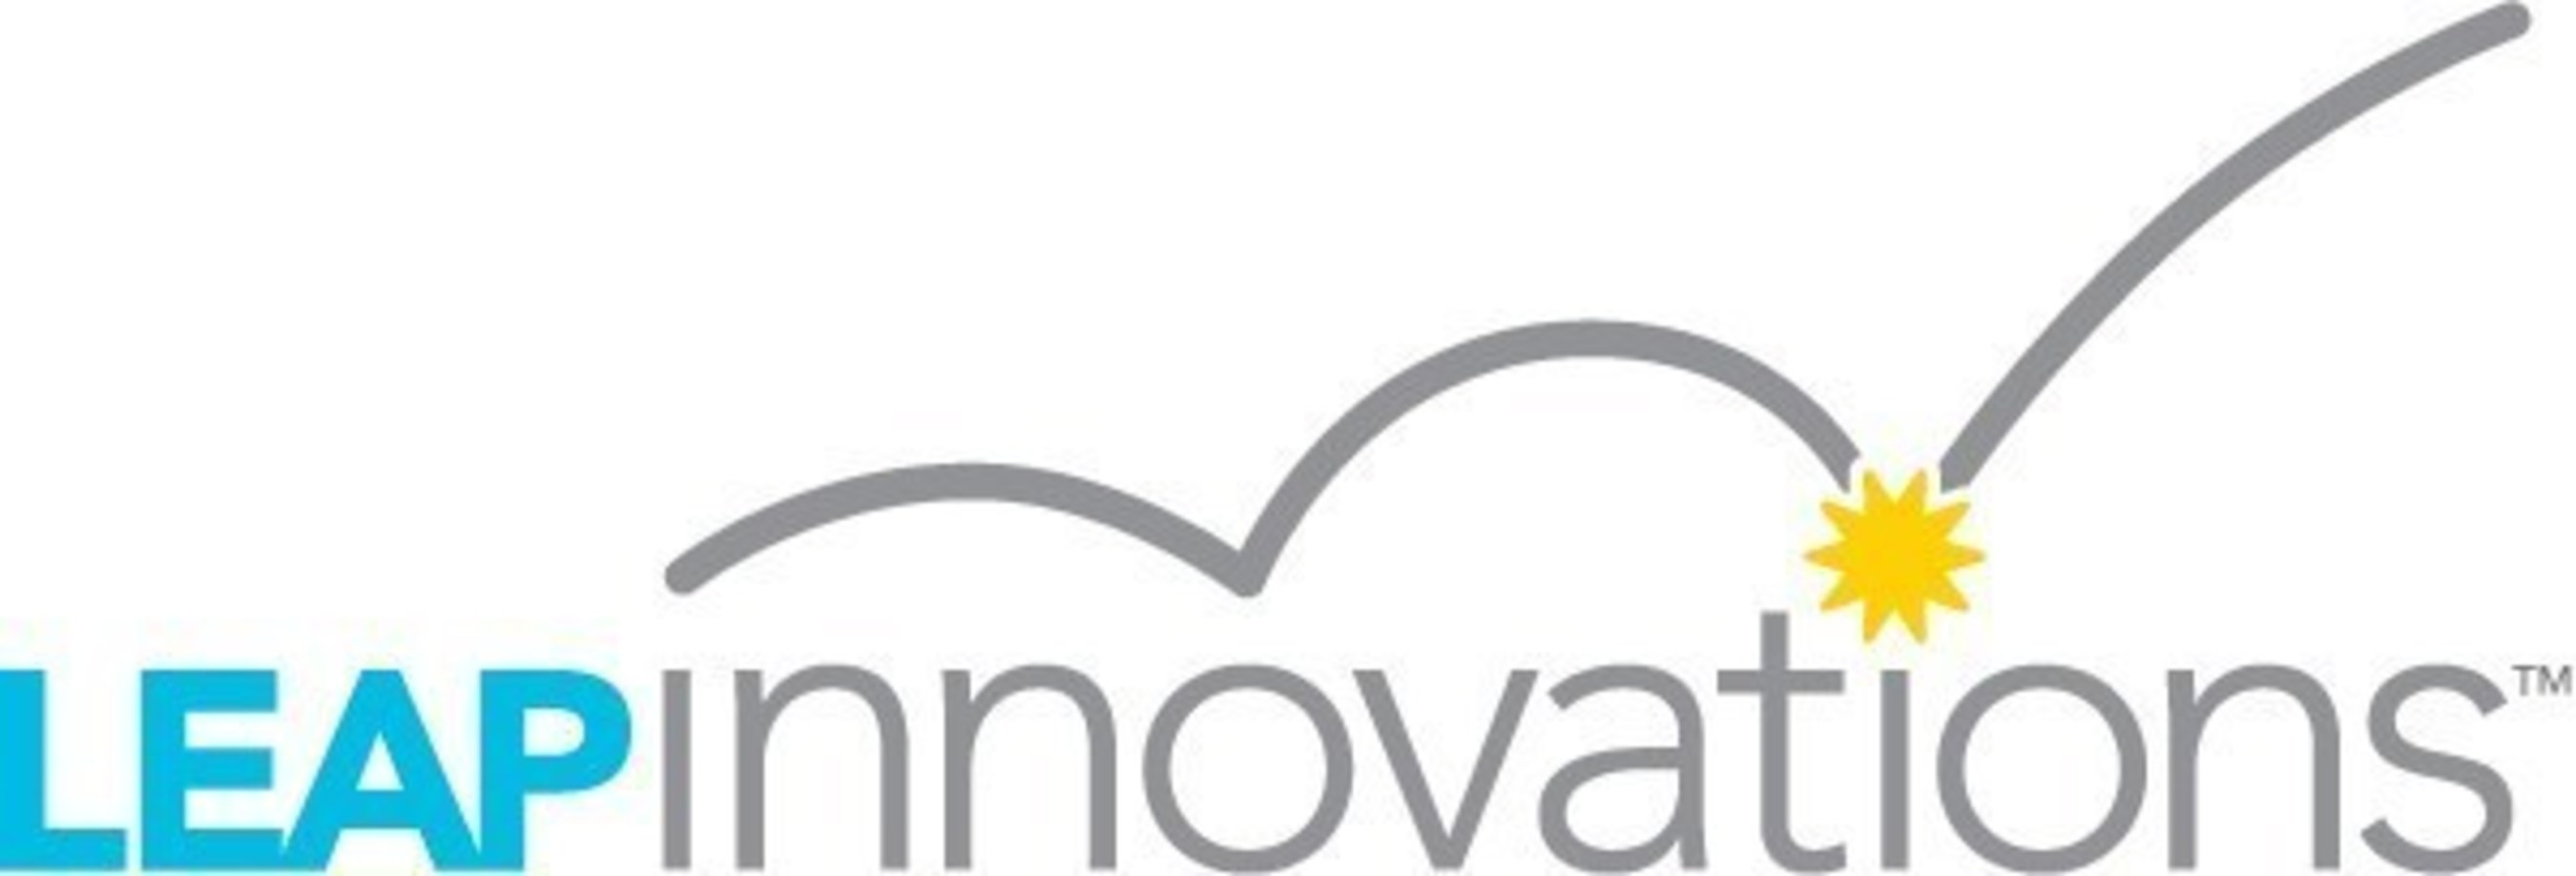 LEAP Innovations is a Chicago-based nonprofit organization that connects innovation and education.